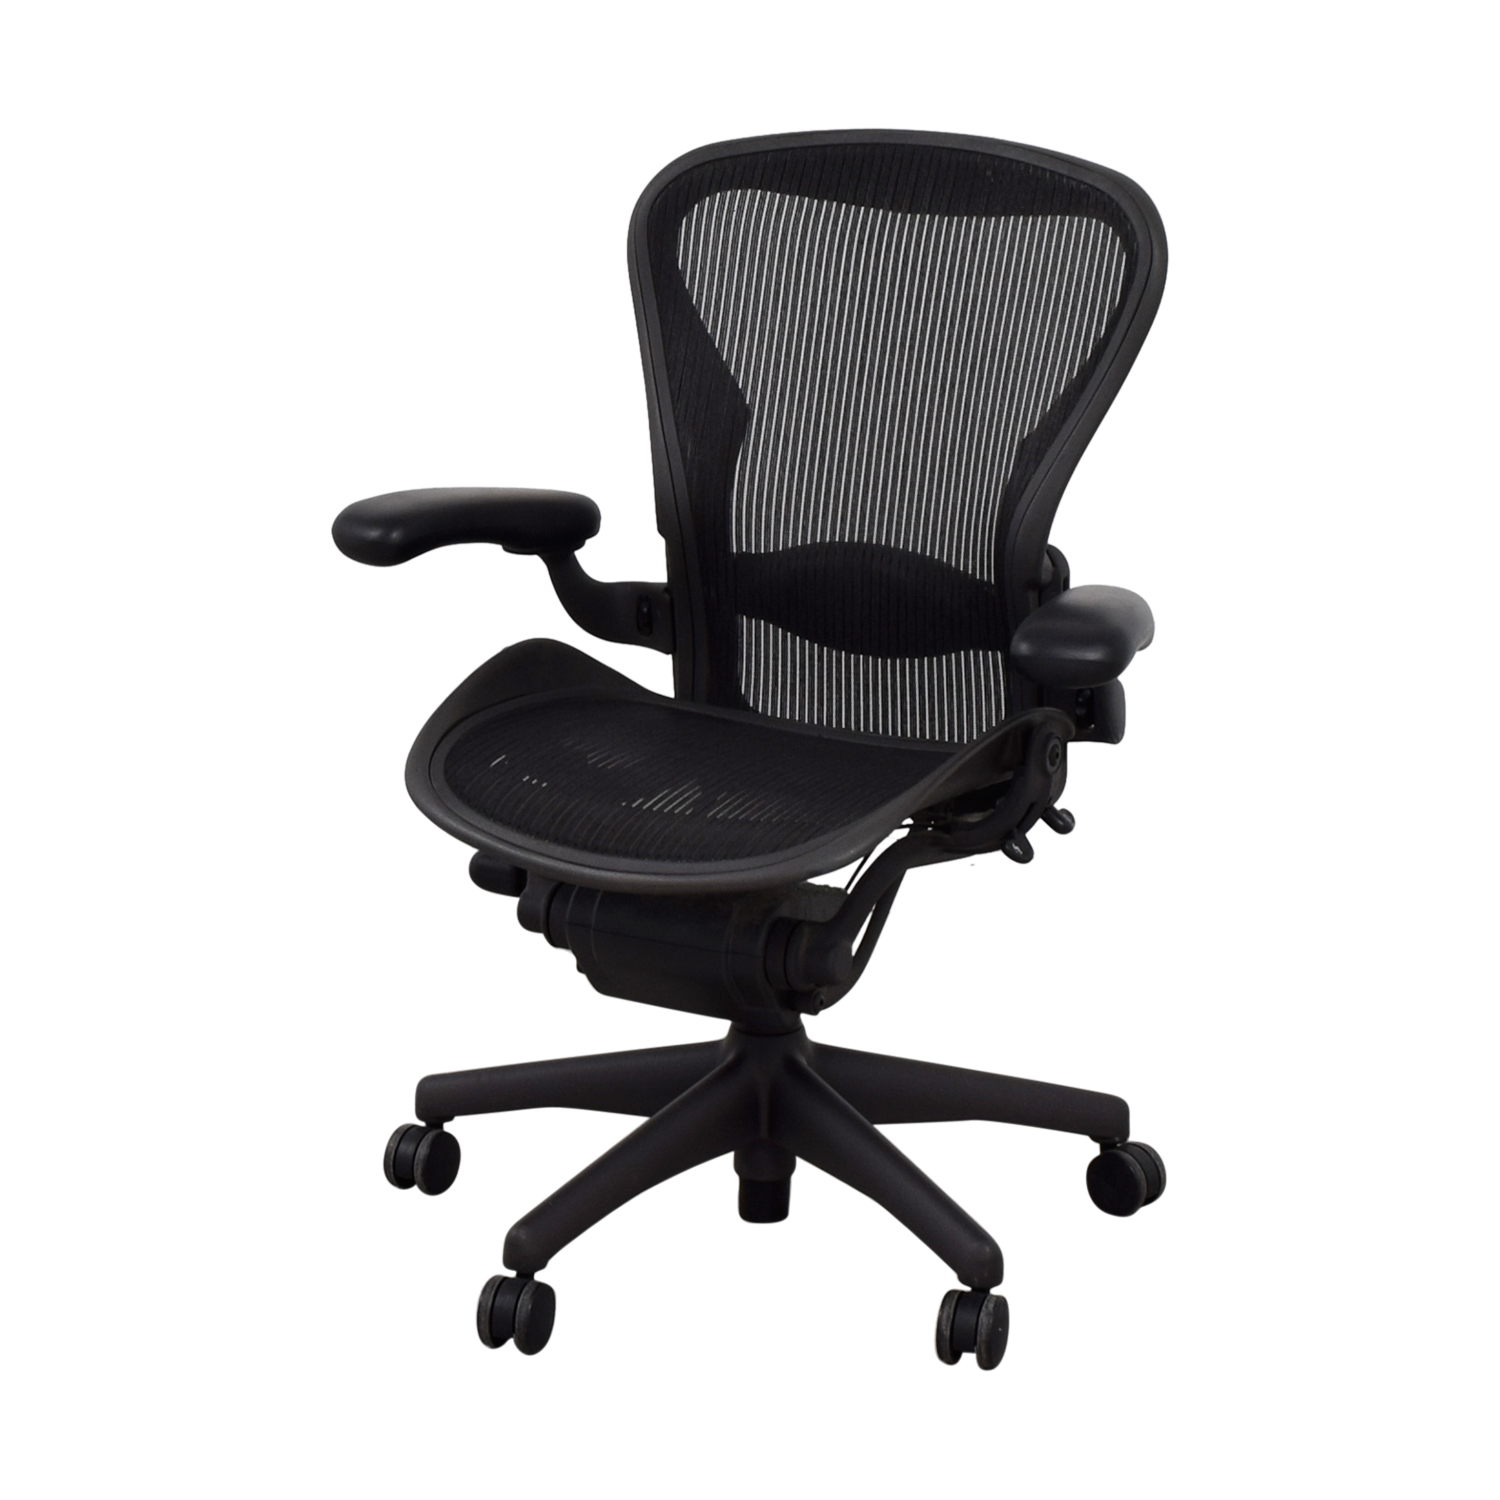 Herman Miller Herman Miller Aeron Black Chair Home Office Chairs